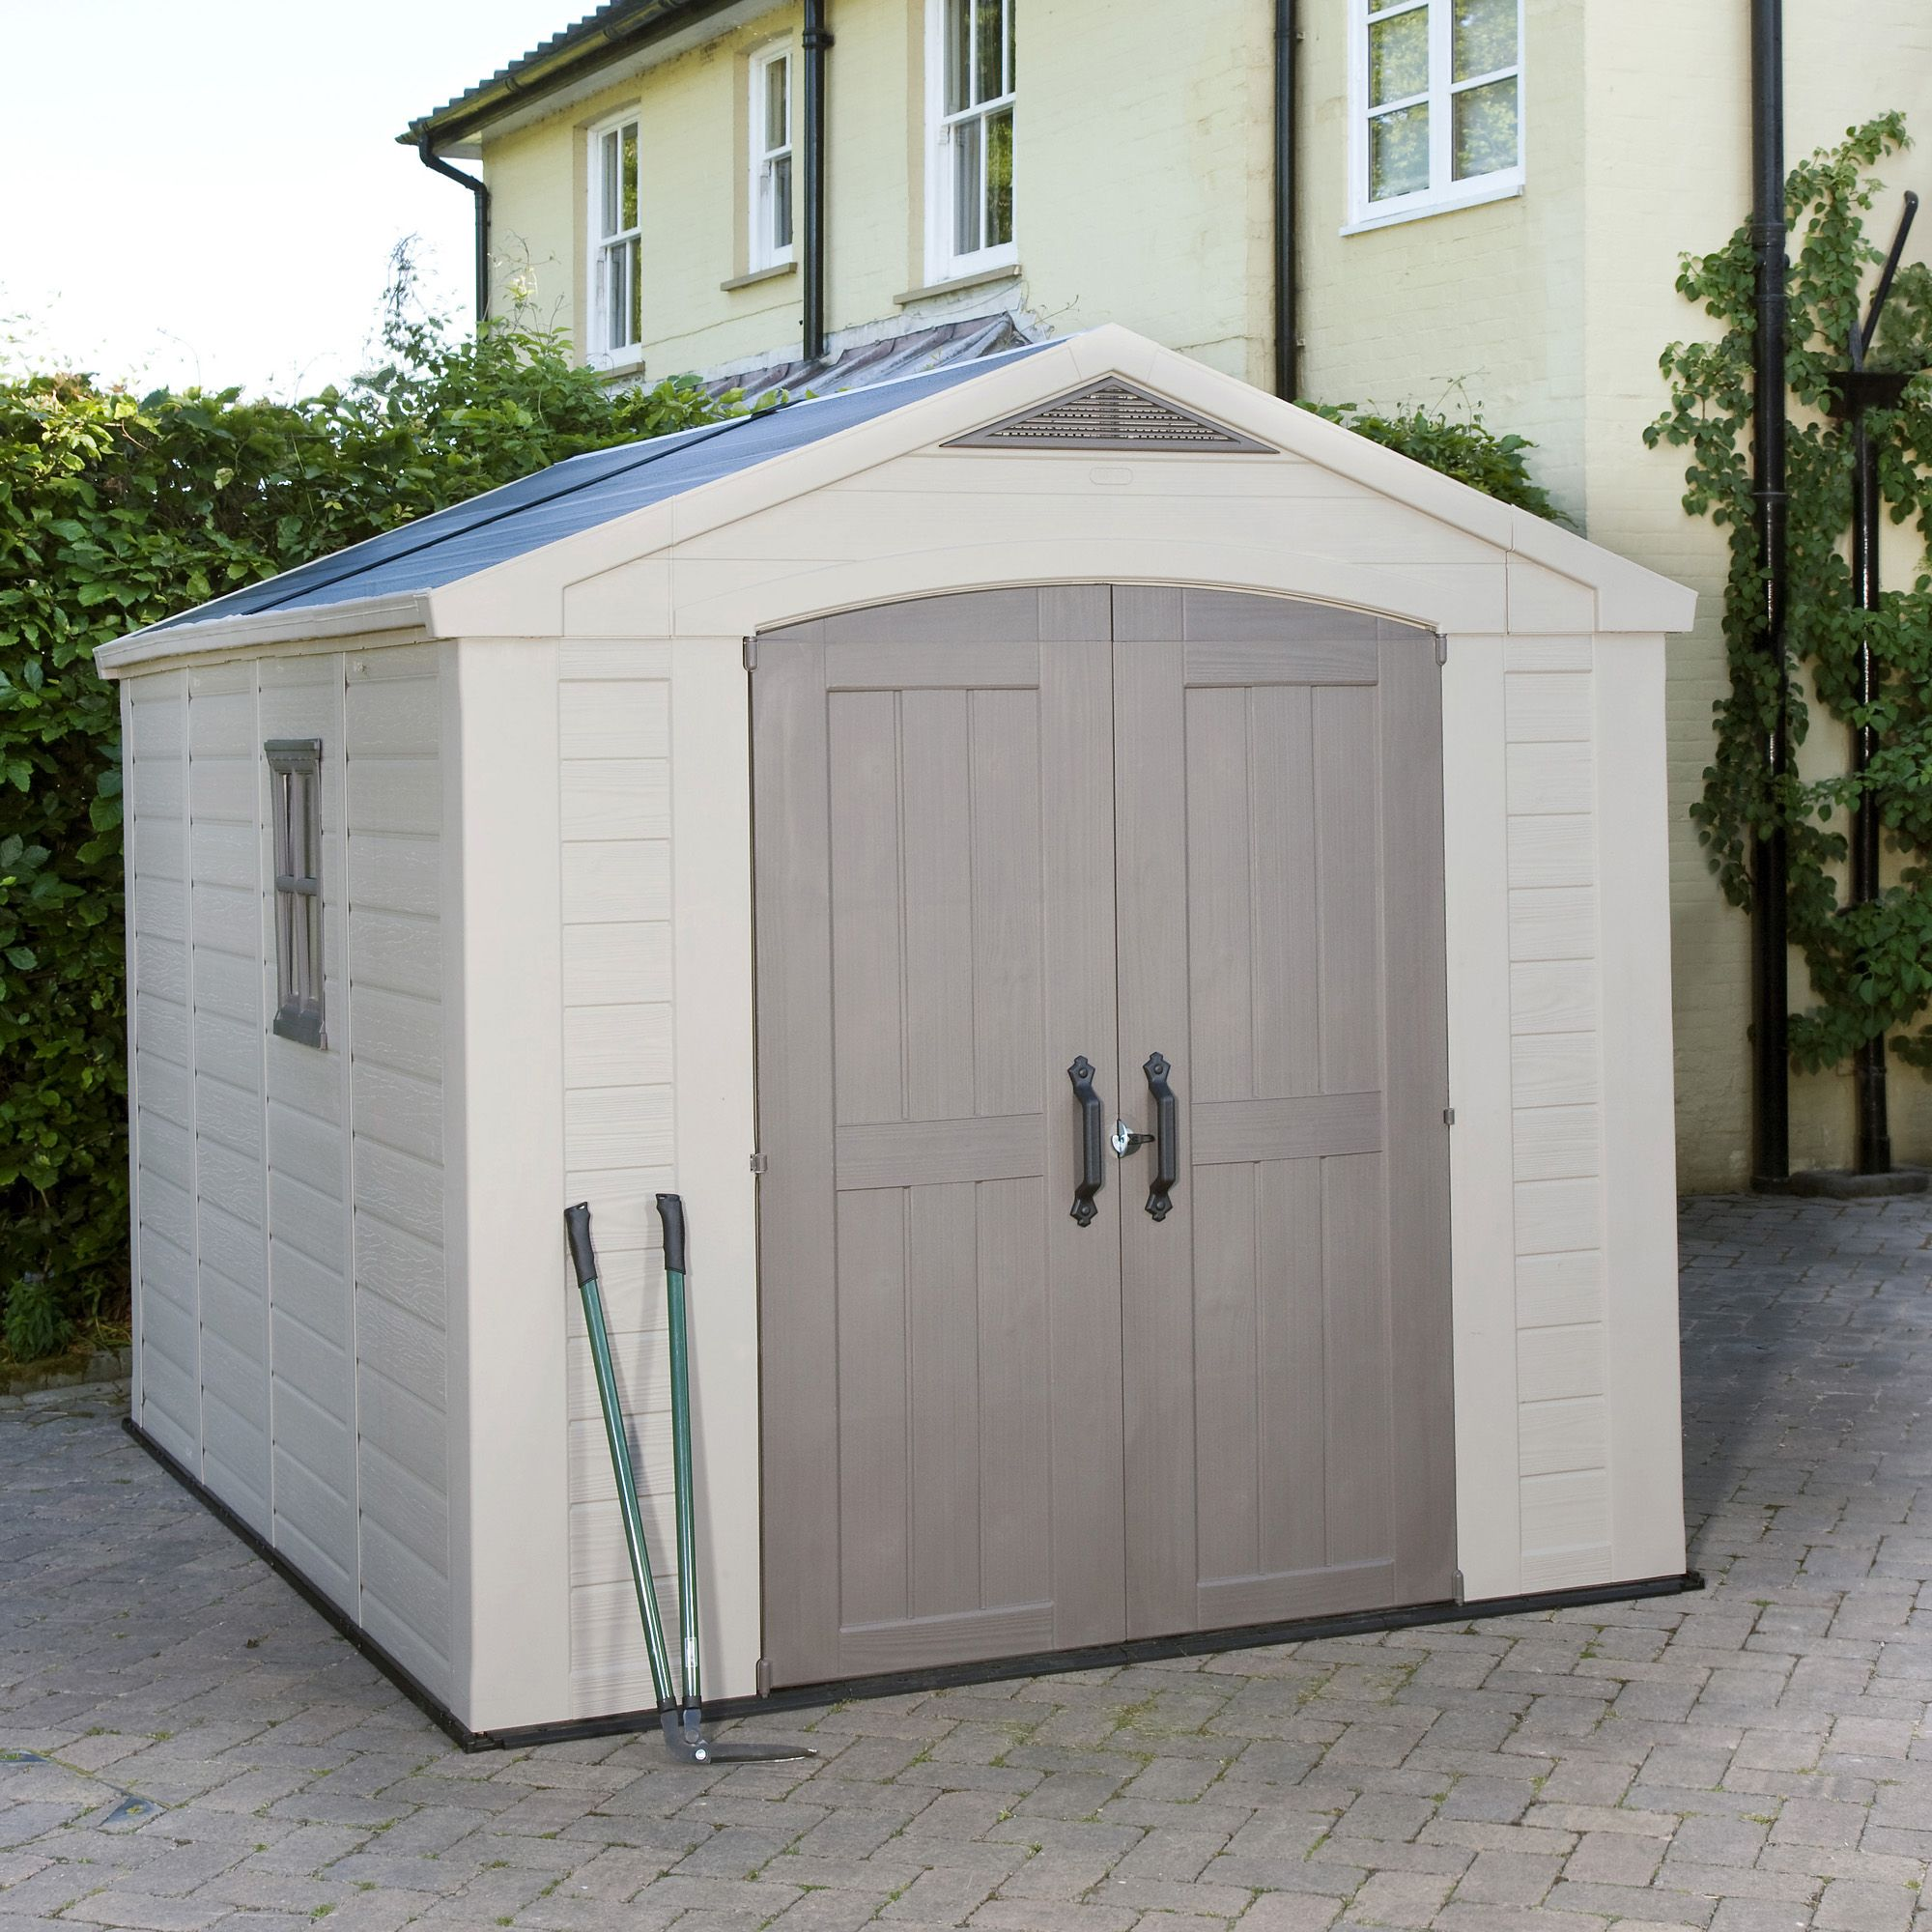 Garden Sheds 8x8 garden sheds b q - house decoration design ideas is the new way to